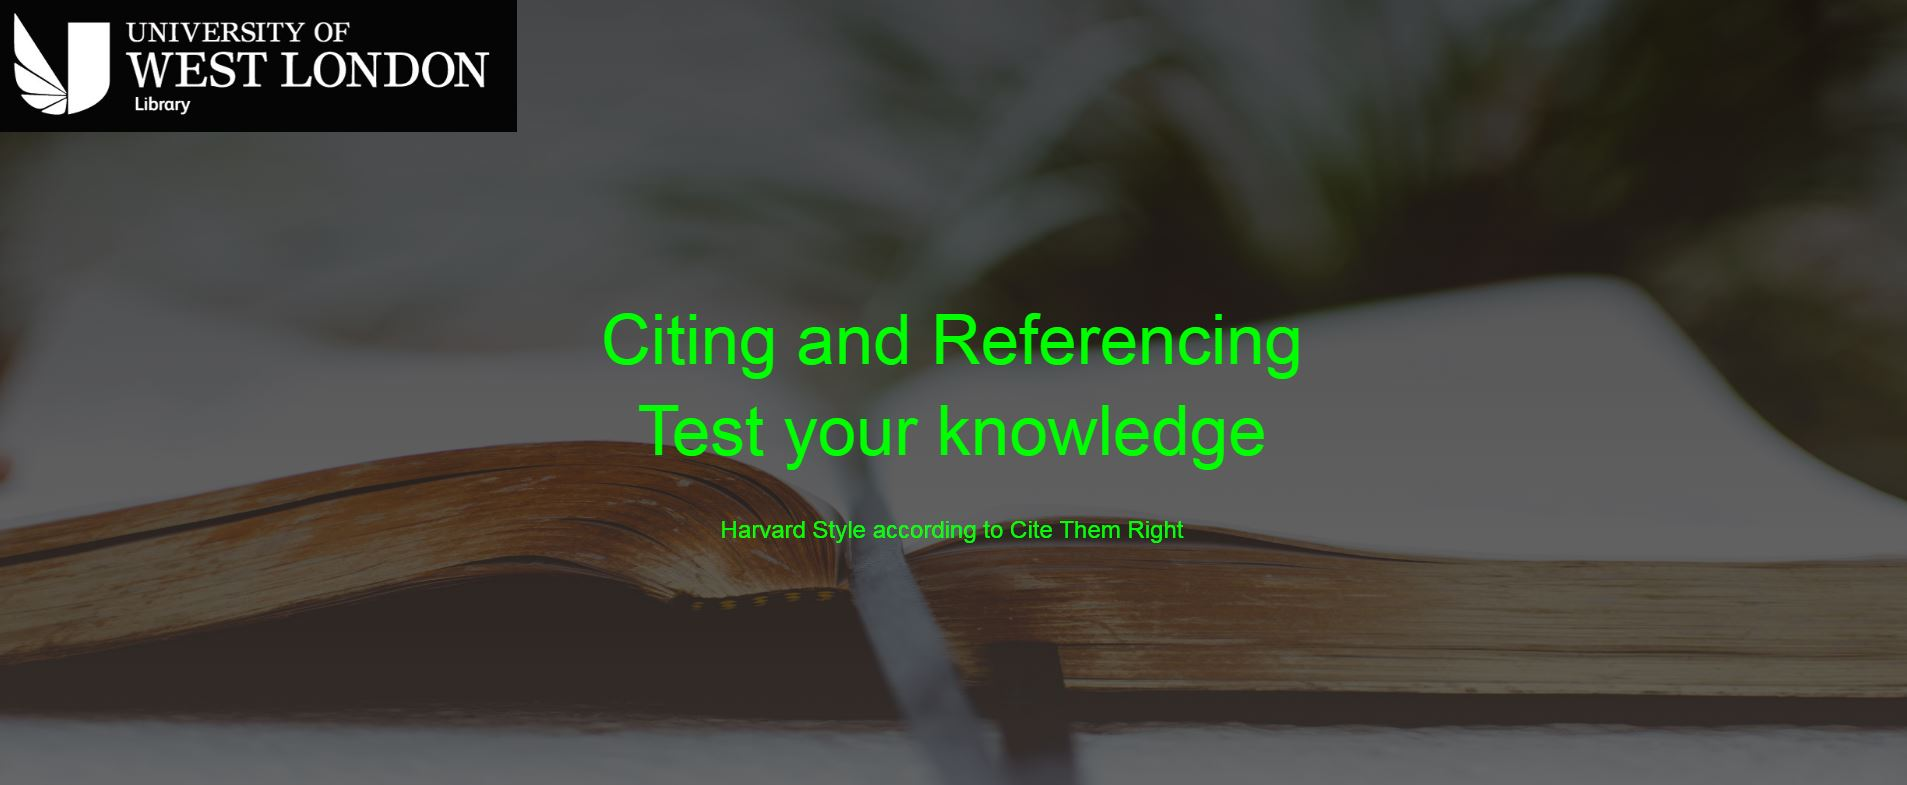 Citing and Referencing. Test your knowledge